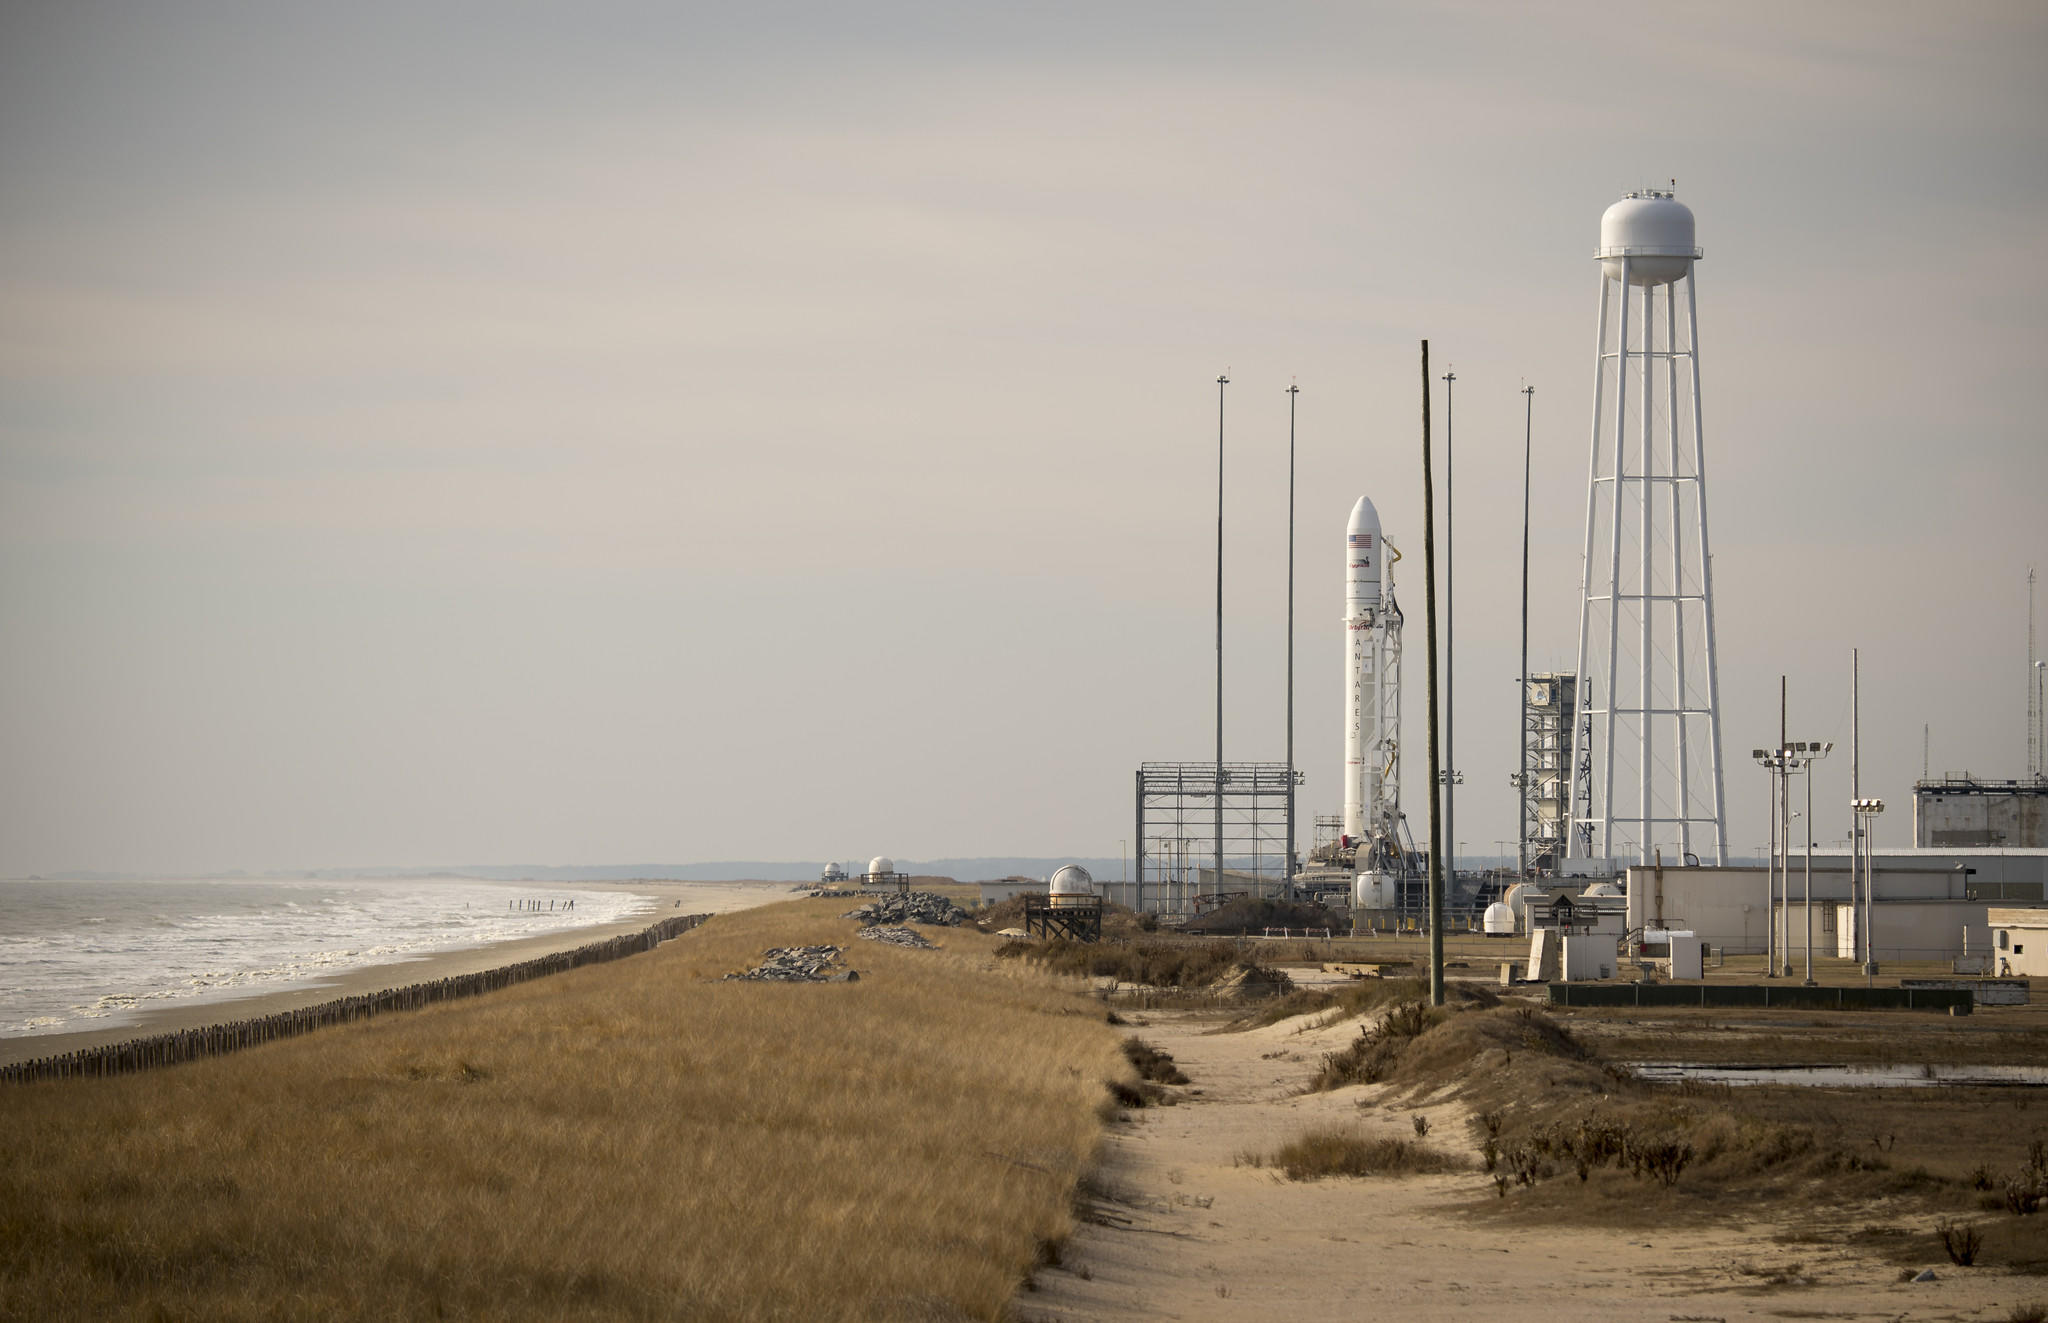 The Orbital Science Corporation Antares rocket is seen shortly after it was raised into position at launch Pad-0A, Tuesday, December 16, 2013, at NASA's Wallops Flight Facility, Wallops Island, VA. The Antares will launch a Cygnus spacecraft on a cargo resupply mission to the International Space Station. The Orbital-1 mission is Orbital Sciences' first contracted cargo delivery flight to the space station for NASA. Among the cargo aboard Cygnus set to launch to the space station are science experiments, crew provisions, spare parts and other hardware. Launch is scheduled for 9:19 p.m. EST on Thursday, Dec. 19. Weather permitting, it may be widely visible along the east coast of the United States. Photo Credit: (NASA/Bill Ingalls)